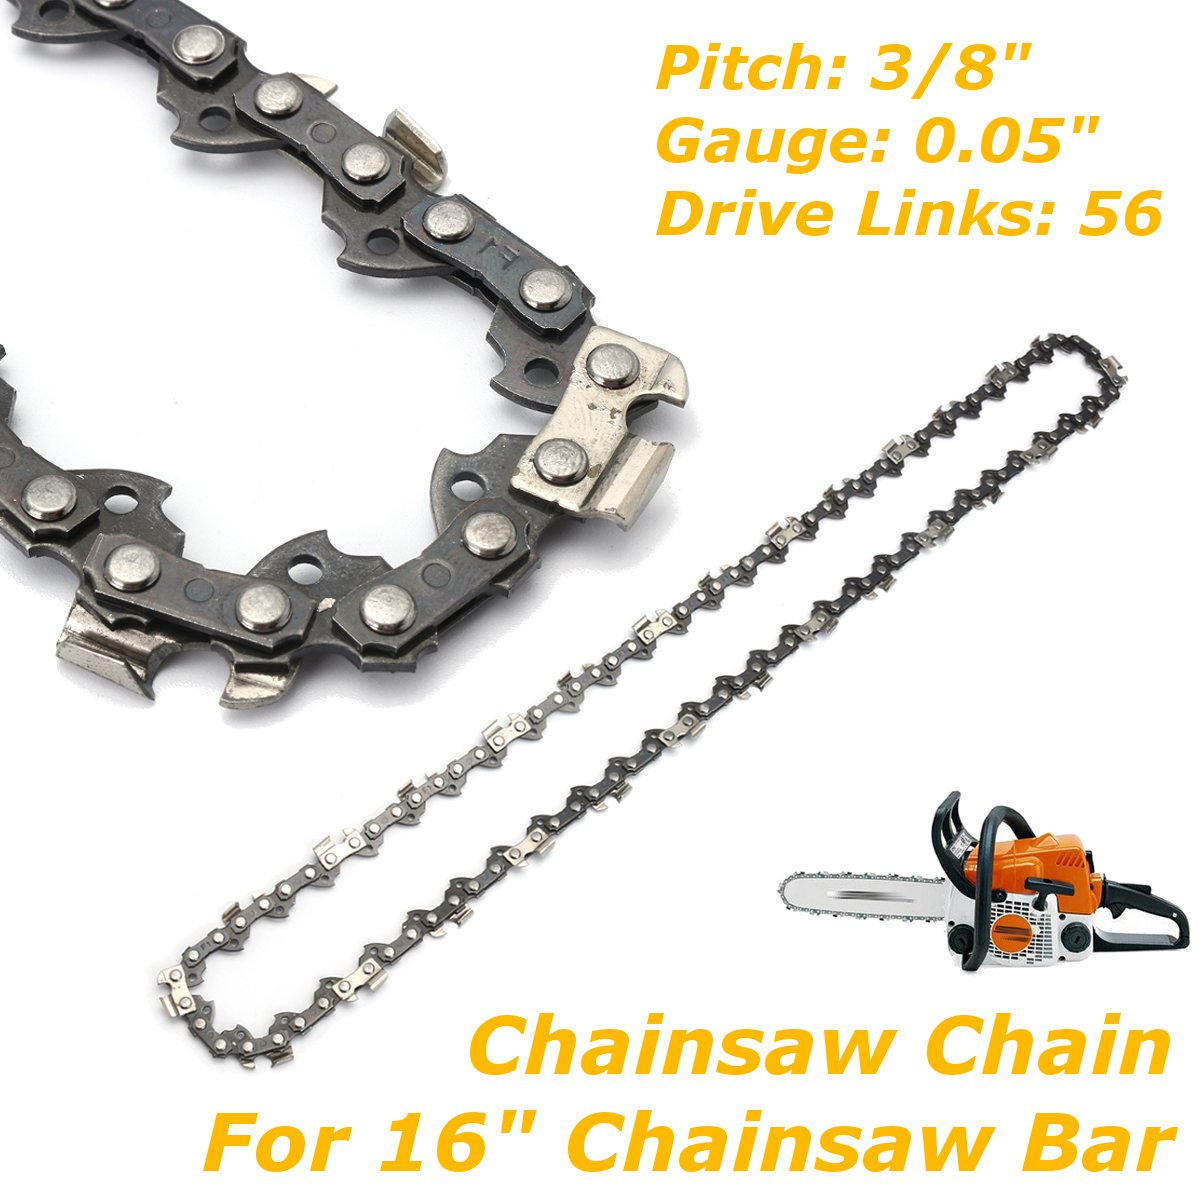 Chainsaw Chain For 16 Inch Chain Saw Bar Pitch 3/8 Inch Gauge 0.05 Inch 56 Drive Rod For Electric Saw